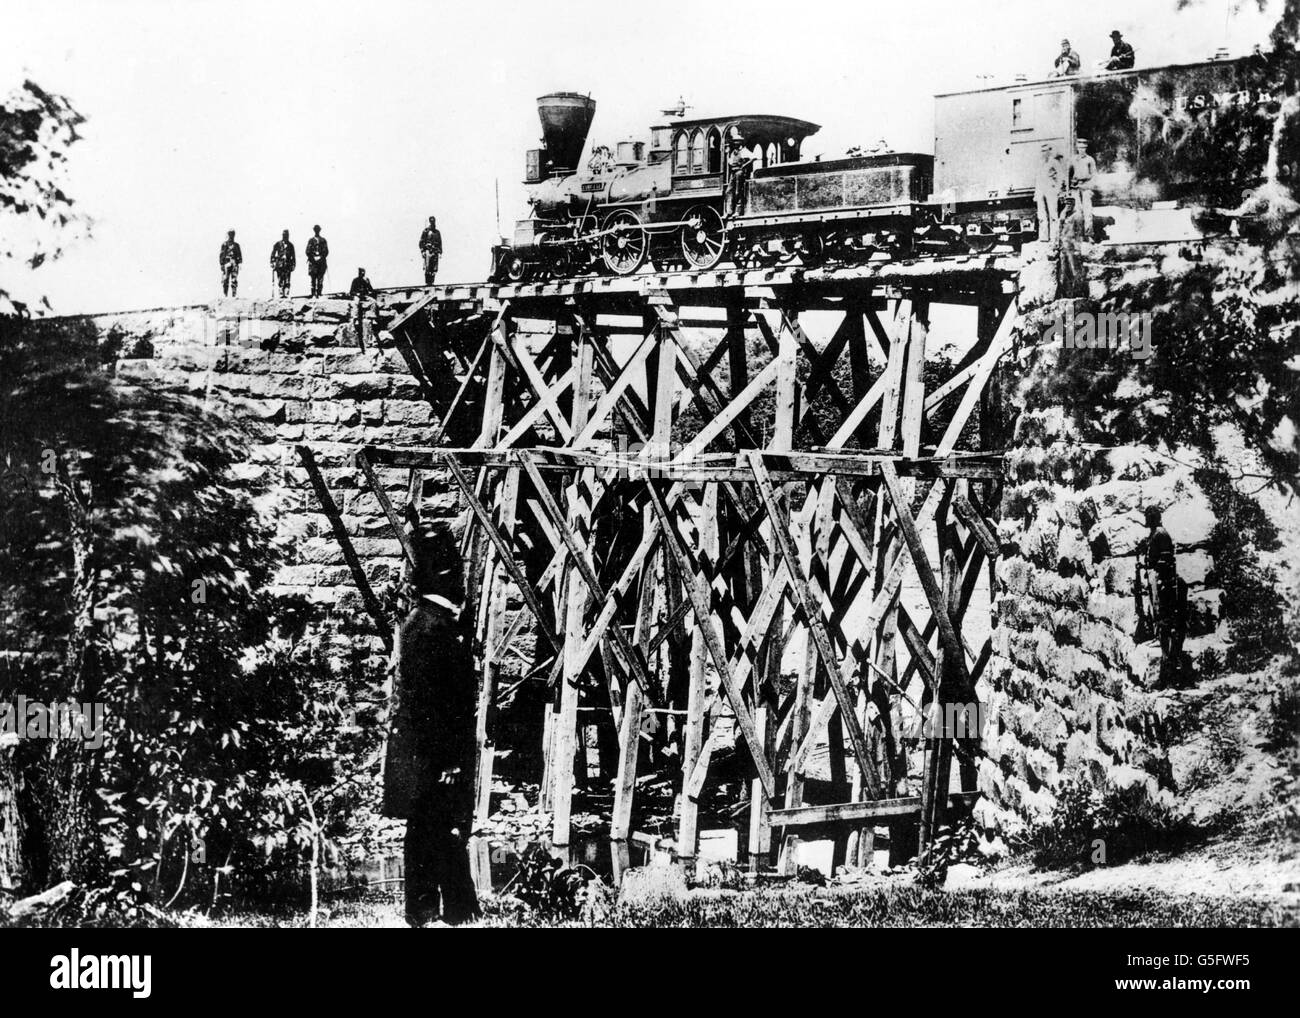 geography / travel, USA, American Civil War 1861 - 1865, transport, military train passing a bridge built by US - Stock Image